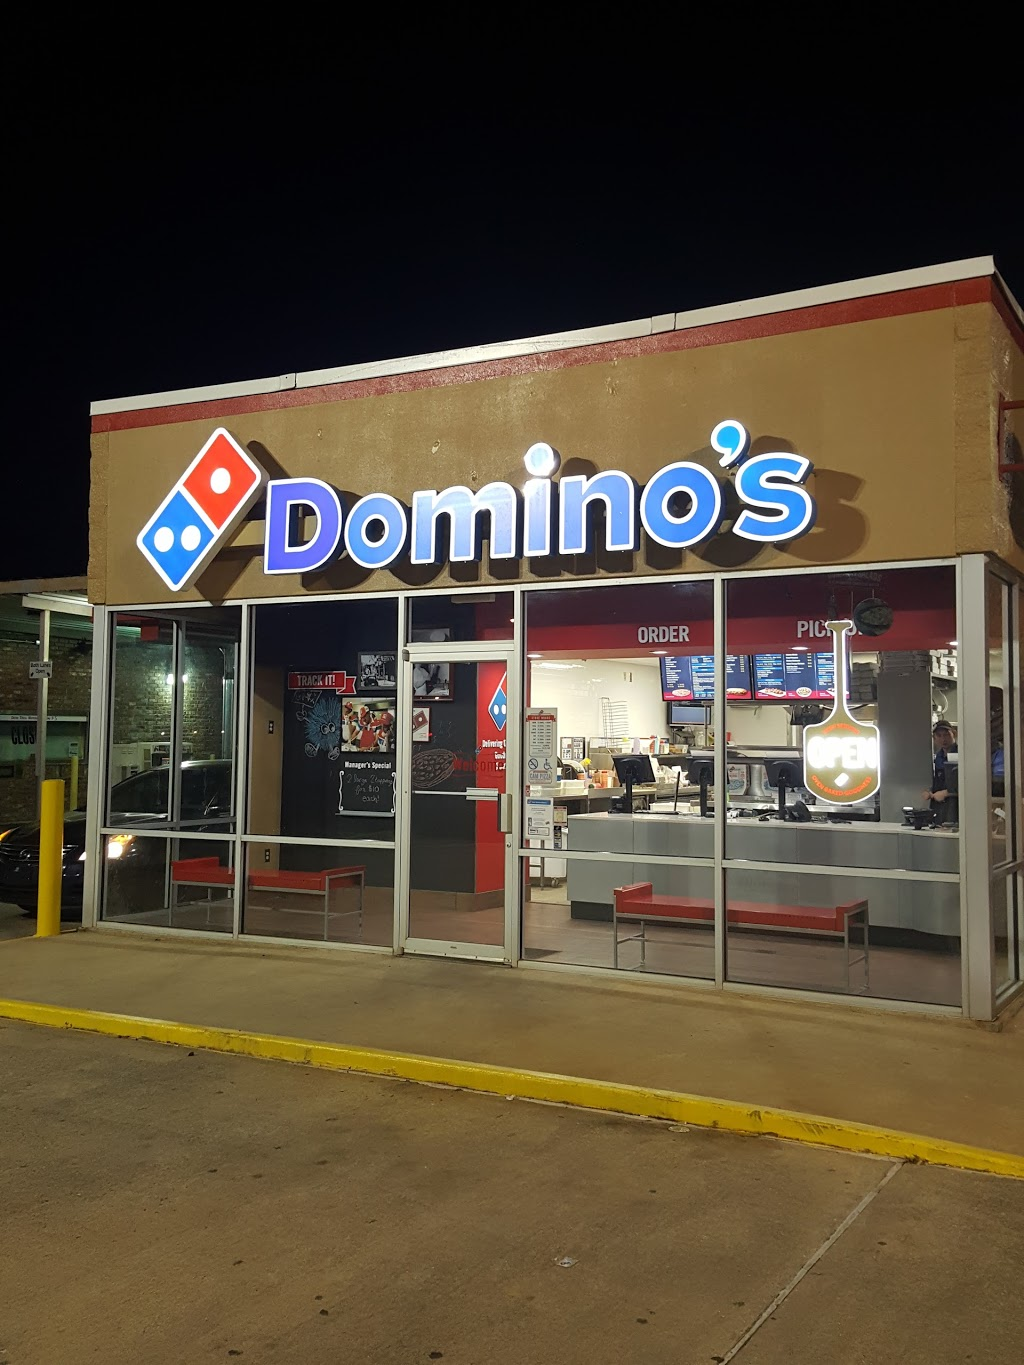 Dominos Pizza   meal delivery   995 Tech Dr, Ruston, LA 71270, USA   3182513030 OR +1 318-251-3030